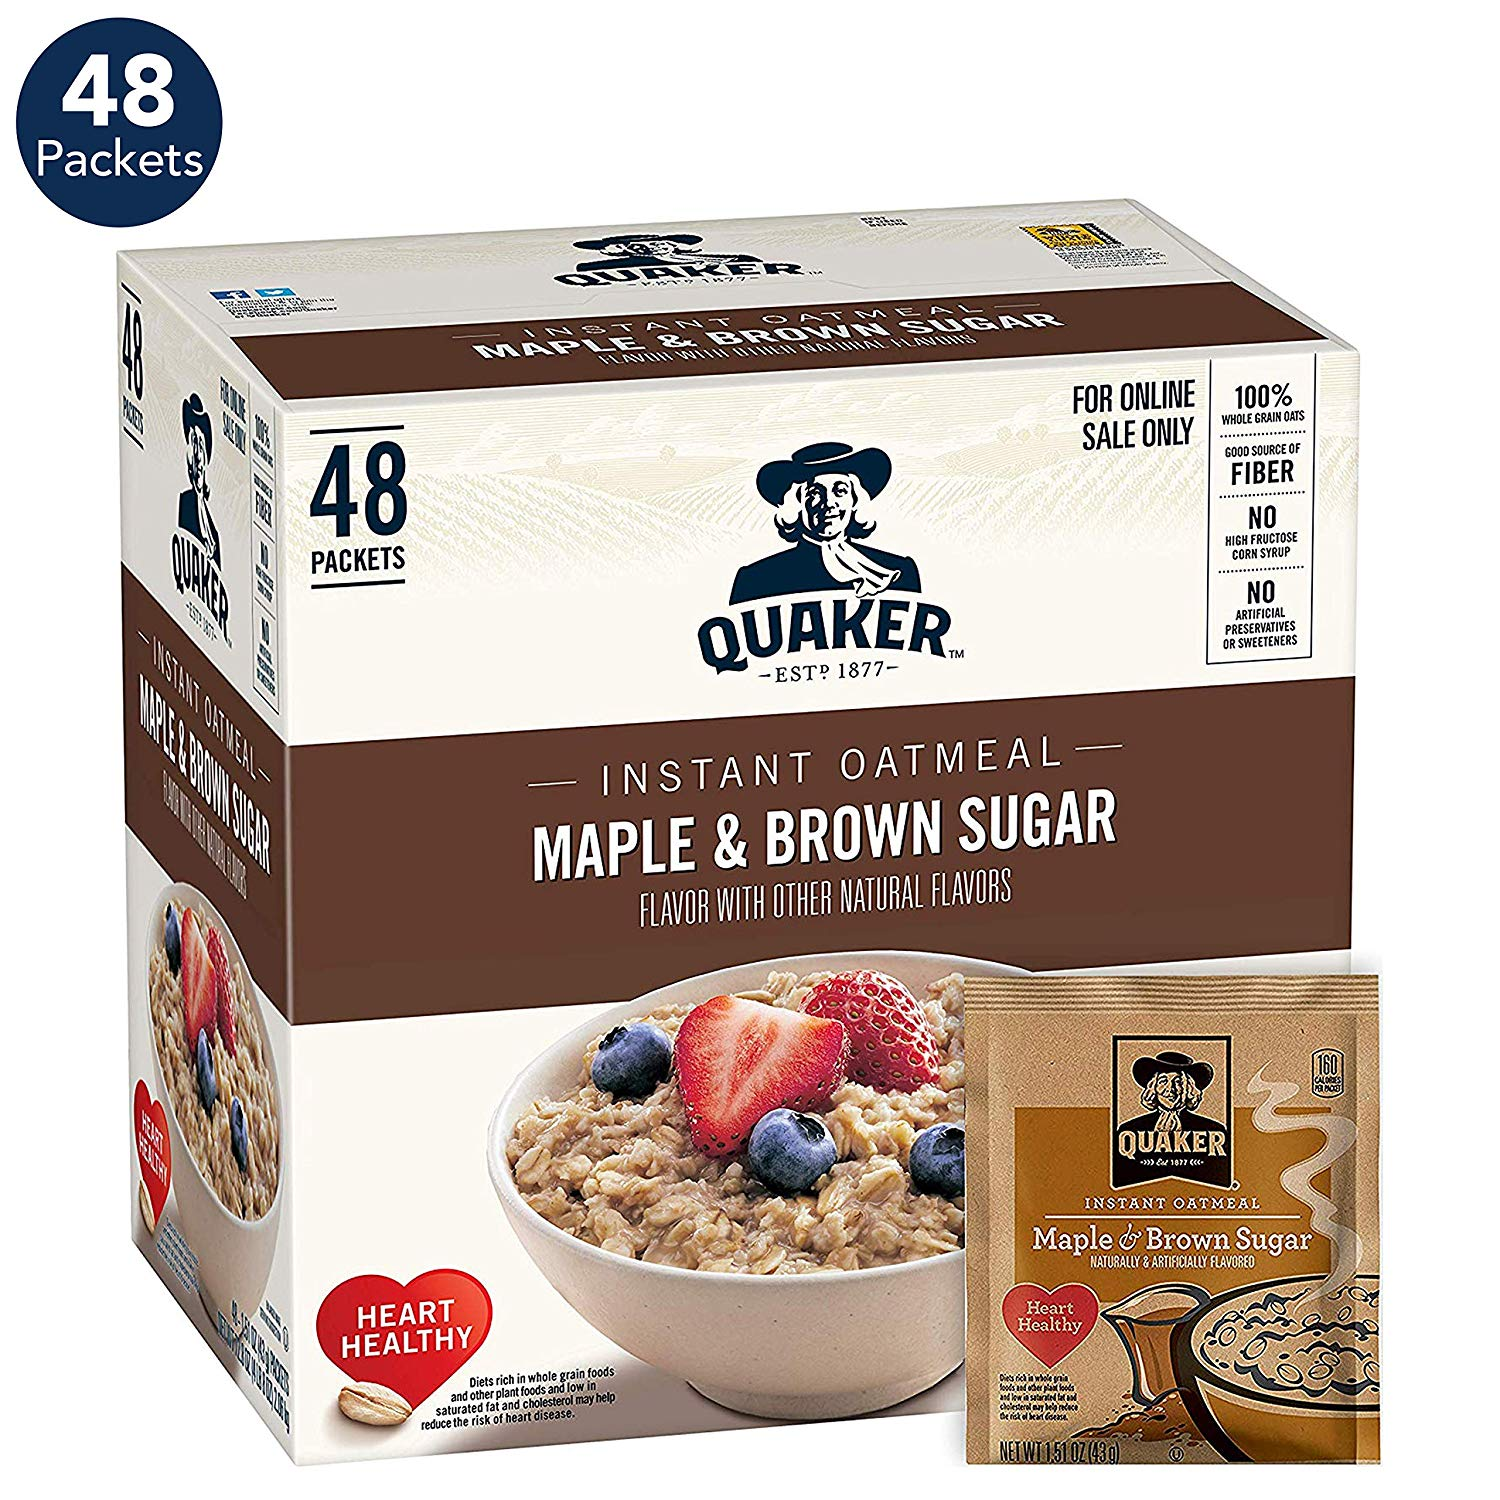 Quaker Instant Oatmeal, Maple and Brown